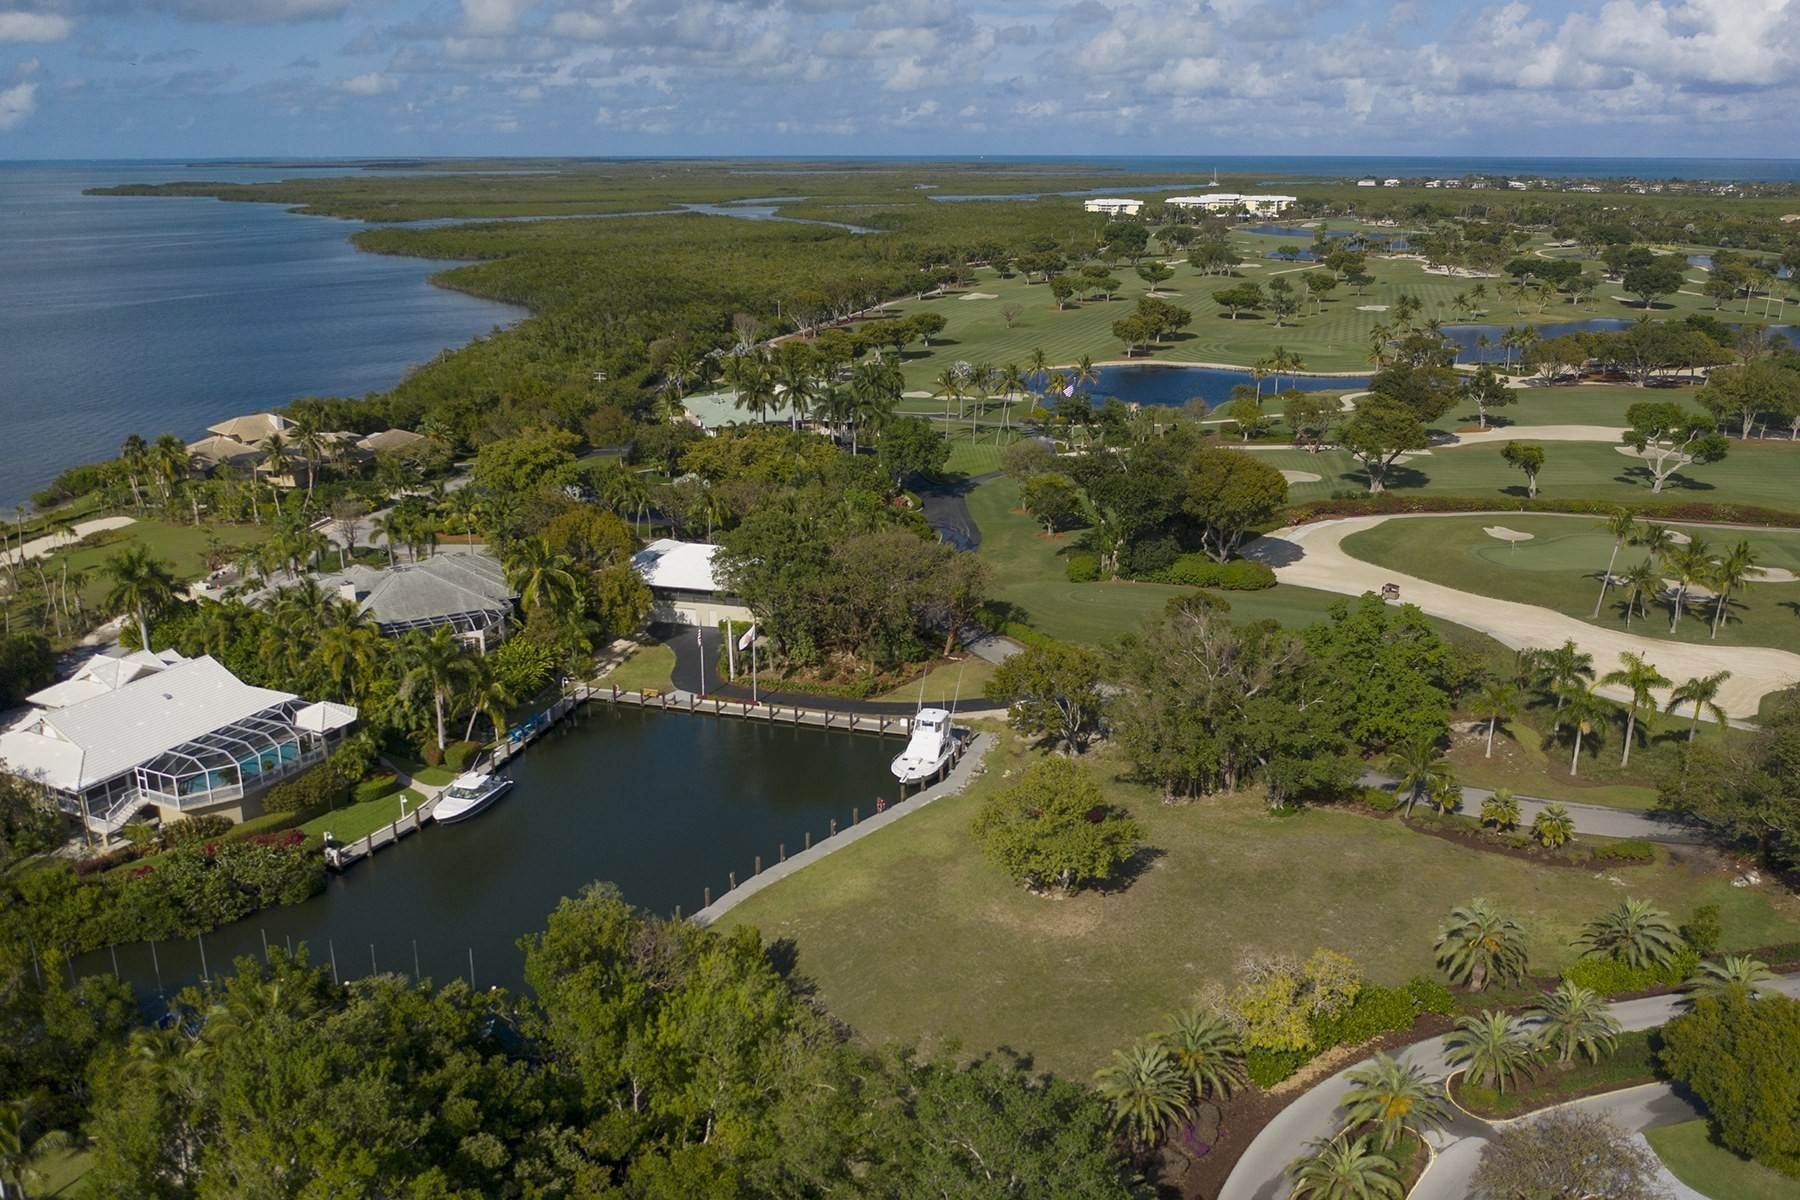 22. Property for Sale at Pumpkin Key - Private Island, Key Largo, FL Pumpkin Key - Private Island Key Largo, Florida 33037 United States